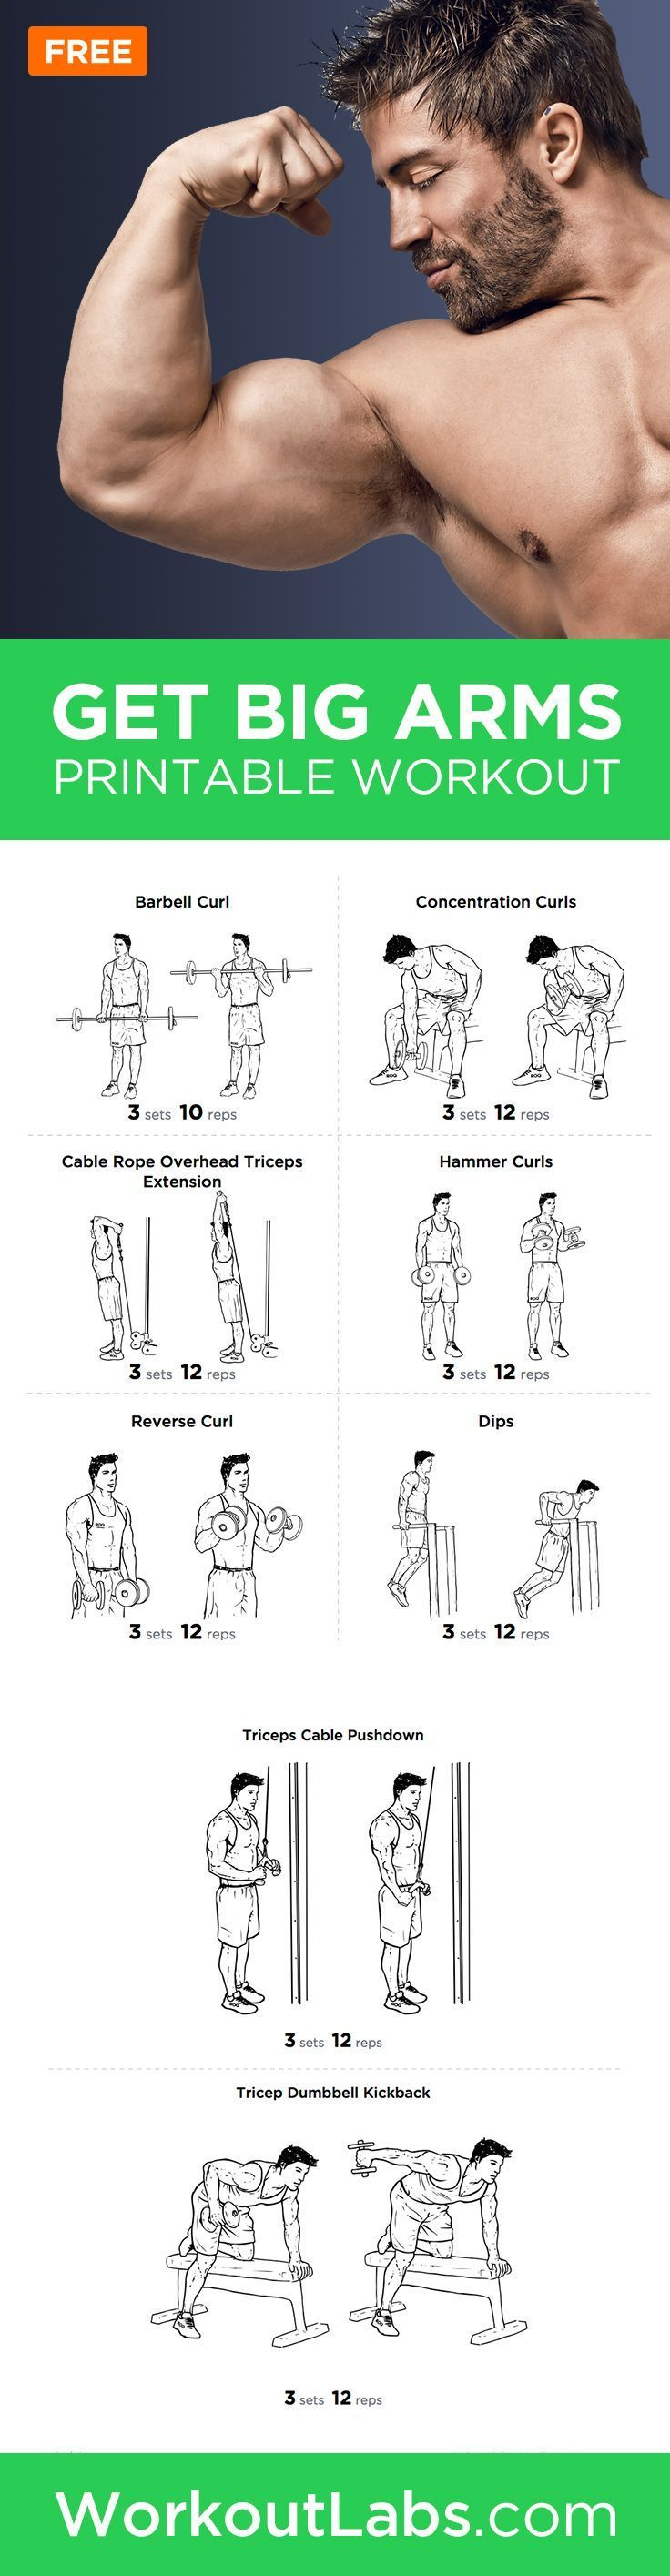 See more here ► https://www.youtube.com/watch?v=__Gi8cvdquw Tags: the quick weight loss diet, whats a quick way to lose weight, quick tips for losing weight - Big Arms Workout: Biceps and Triceps Exercises Printable Routine – Summer is just around the corner, so it's time to show off arms that are ripped and toned with this high intensity workout.: